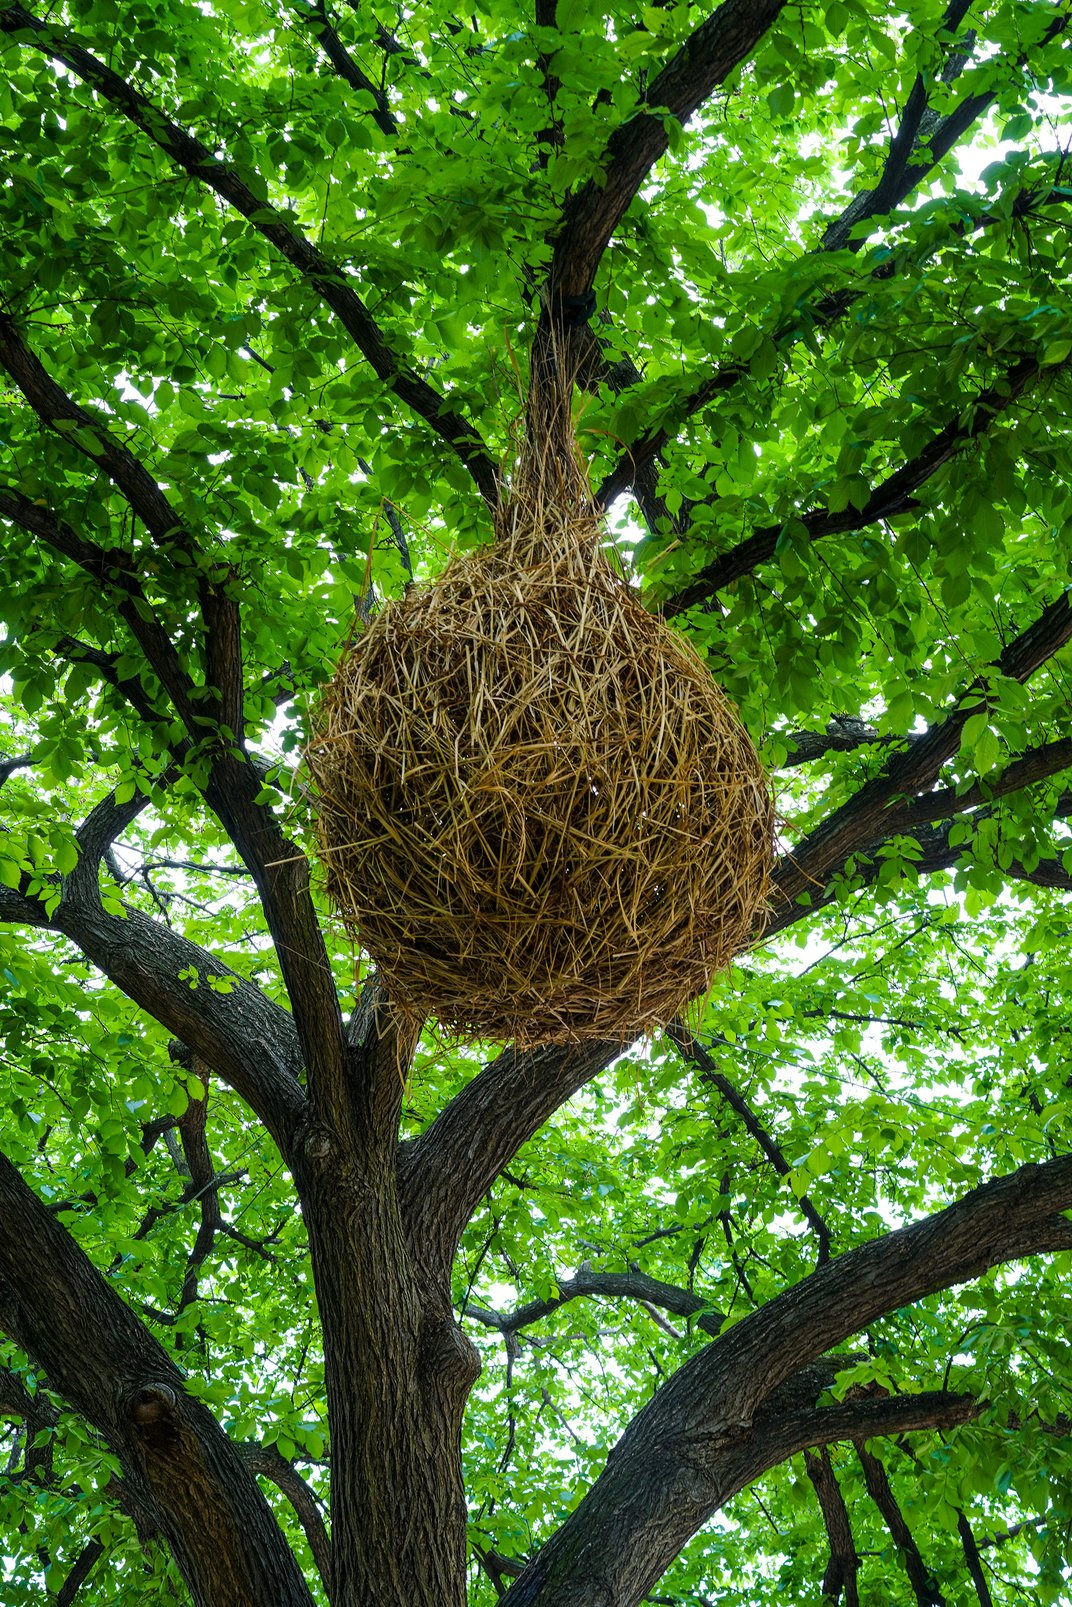 The Gardens Around the National Mall Are Growing Giant Nests and Fanciful Tunnels